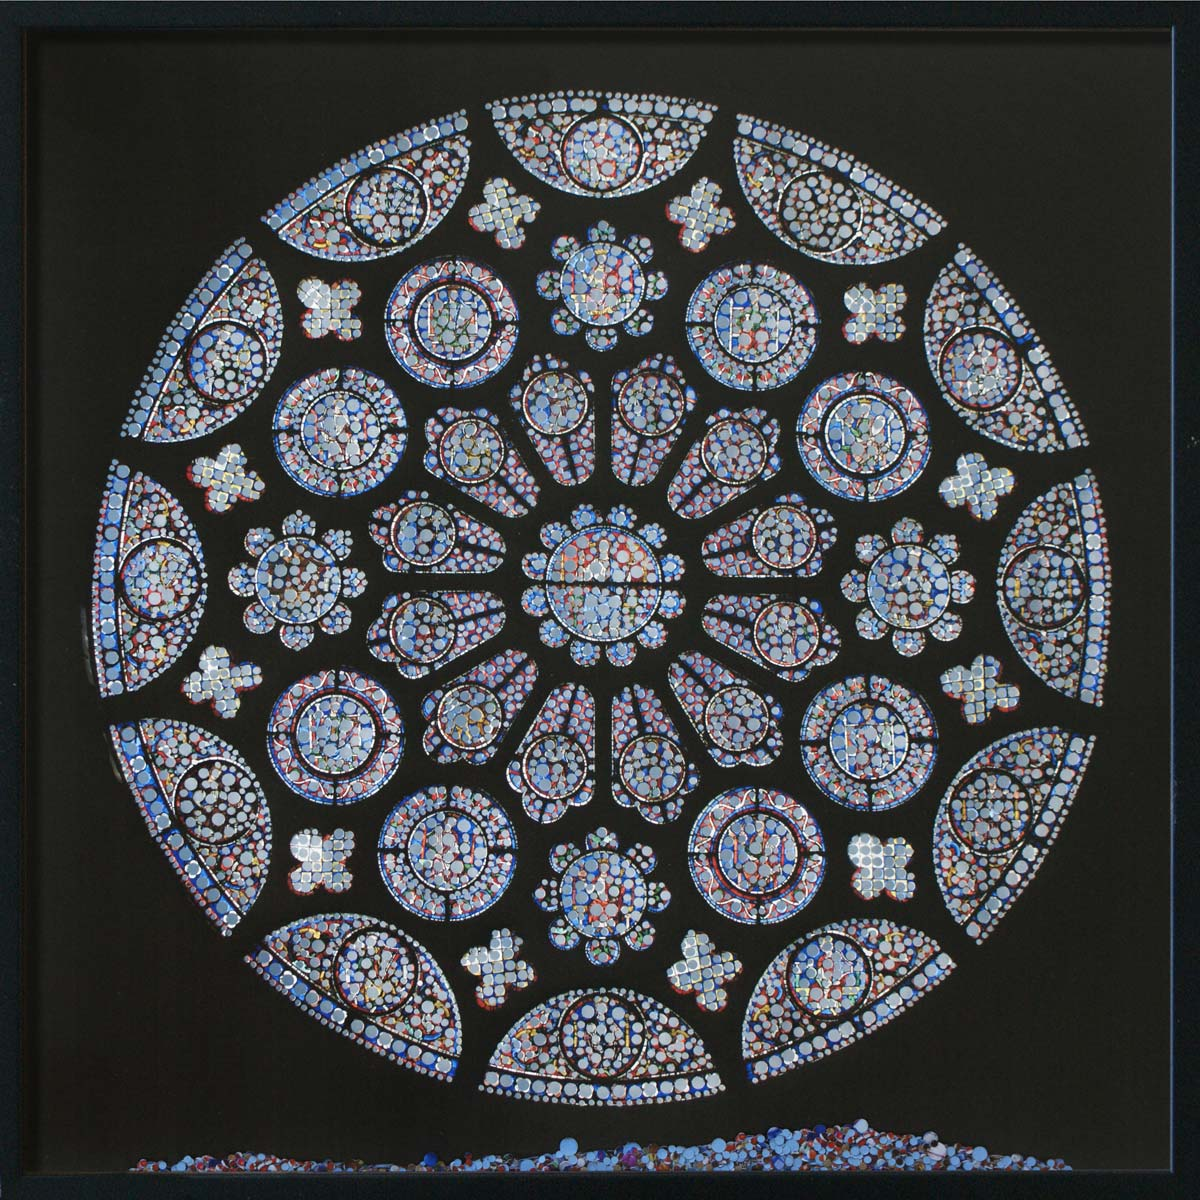 Revelation, Cathédrale Notre-Dame de Chartres, © 2011, Perforated inkjet print, loose confetti produced by the perforation process, each 50 x 50 cm